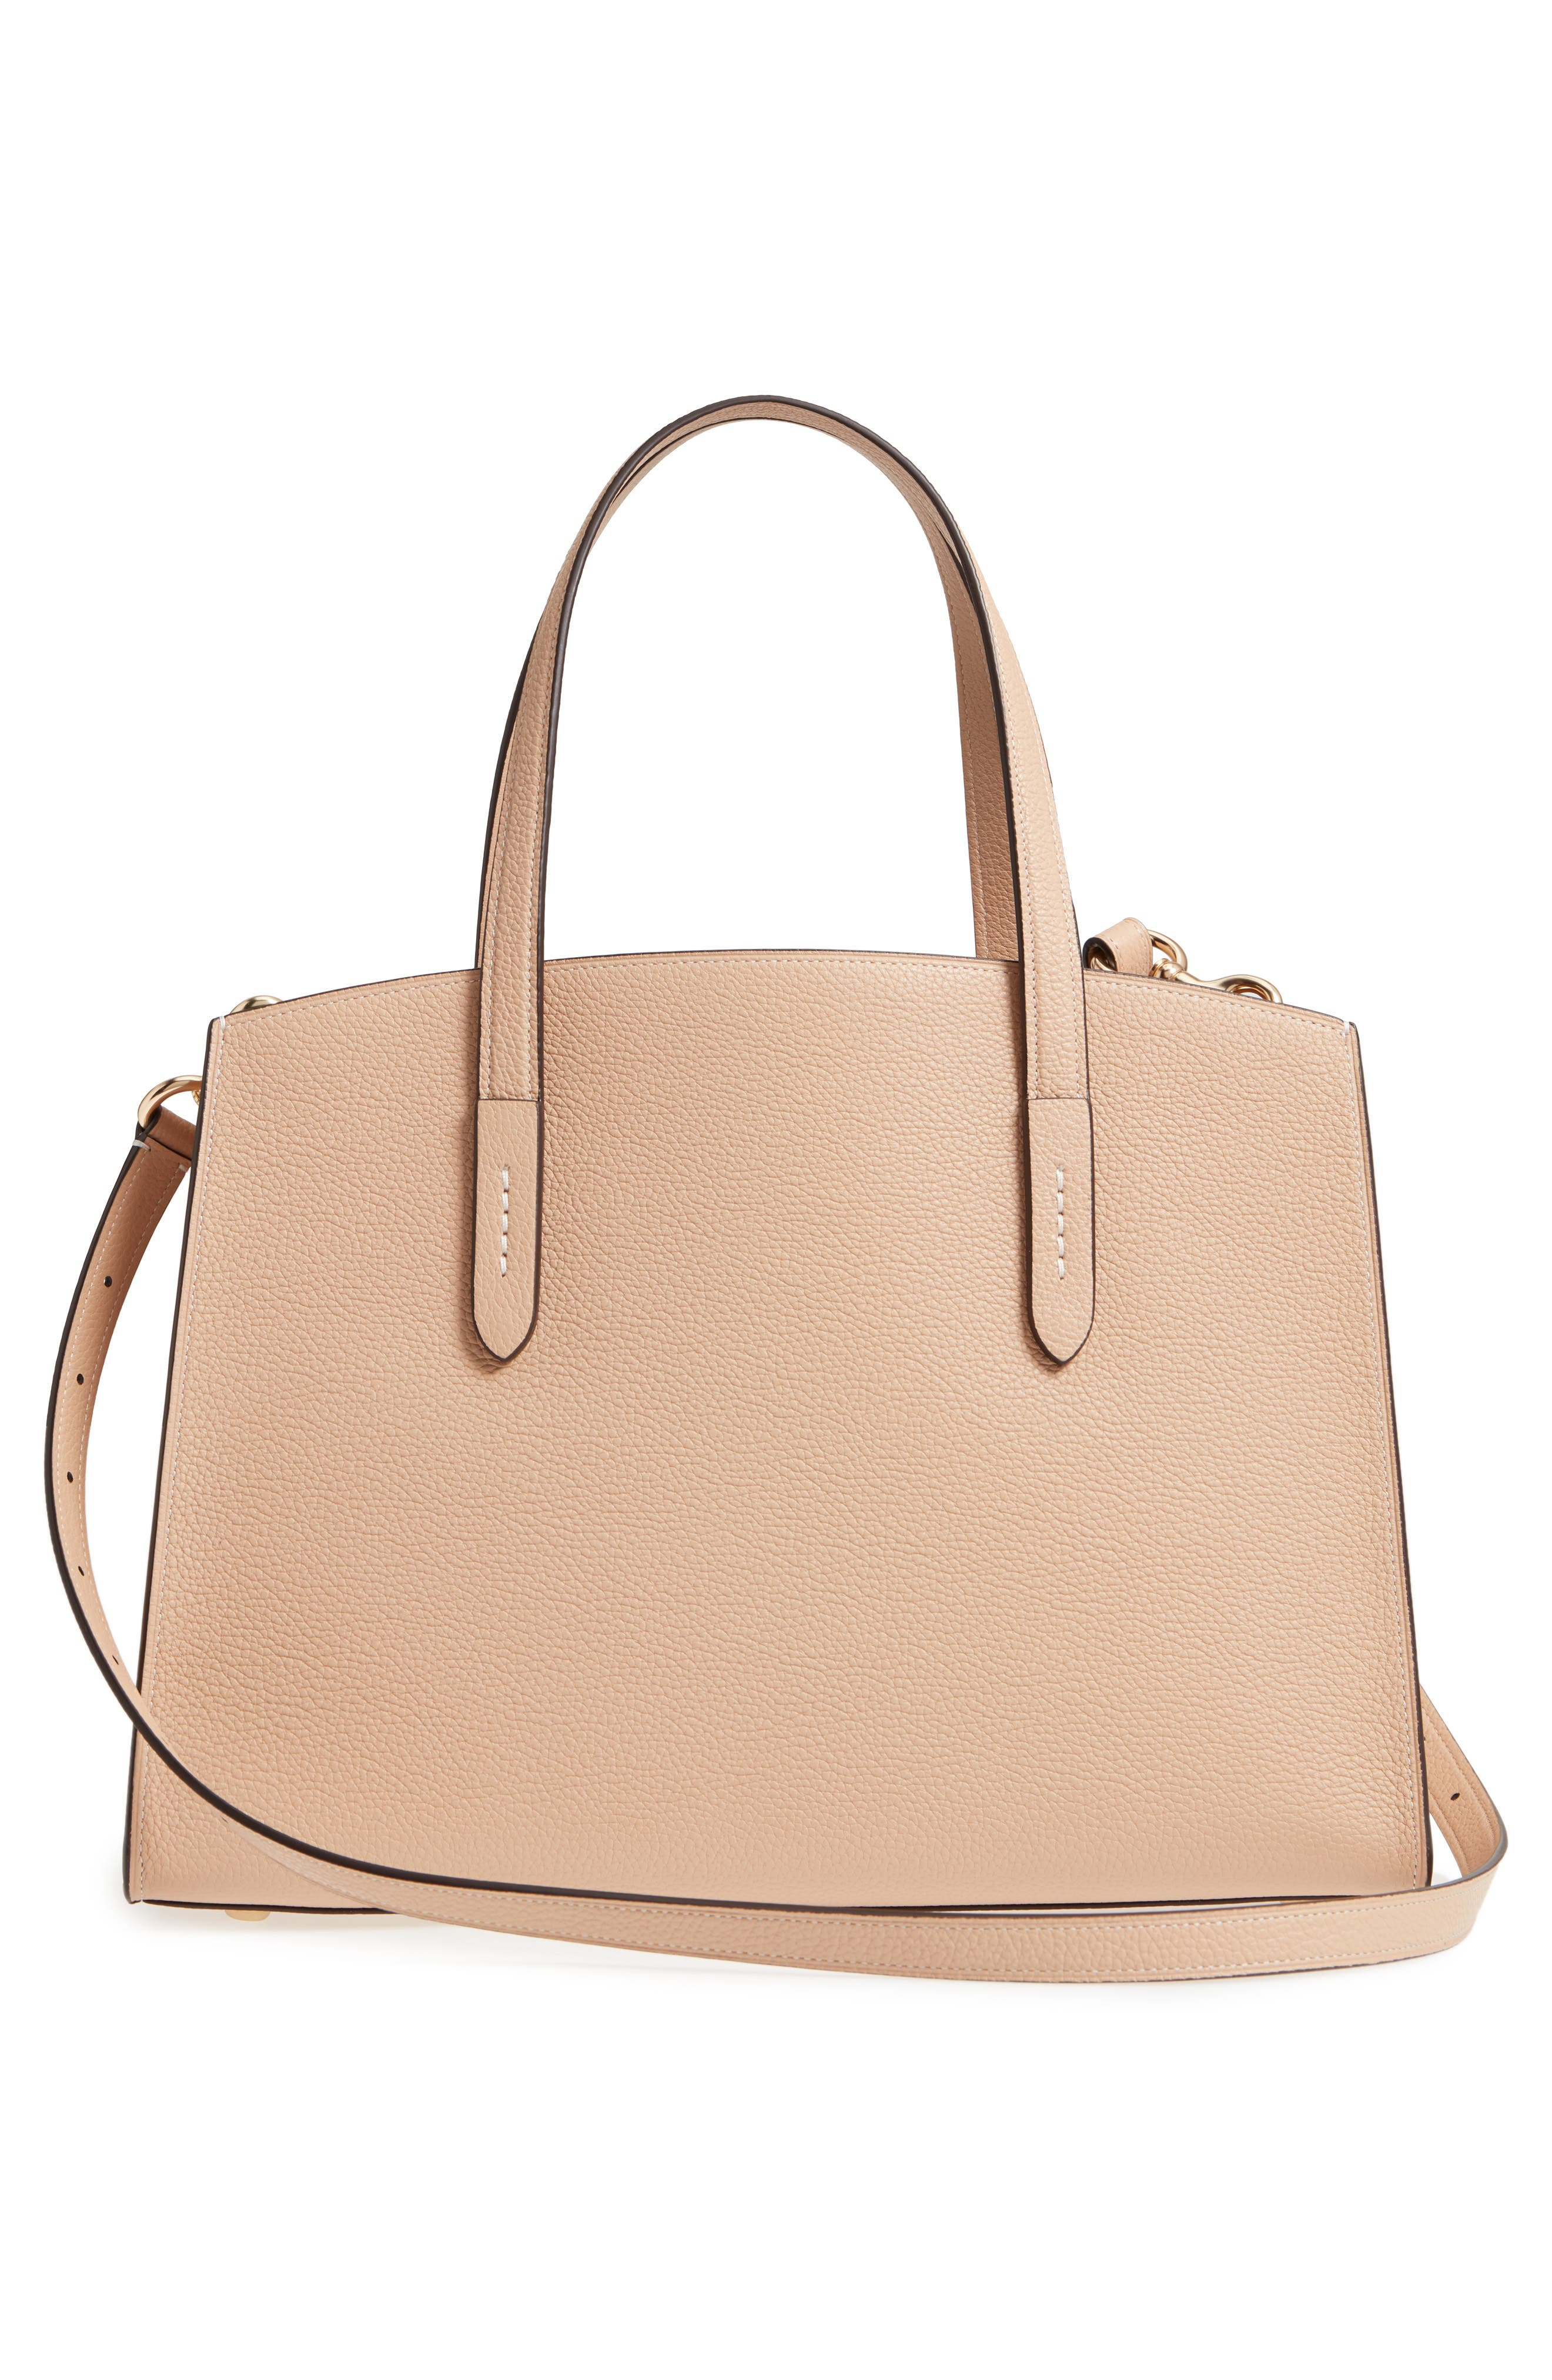 Charlie Leather Tote,                             Alternate thumbnail 3, color,                             Beechwood